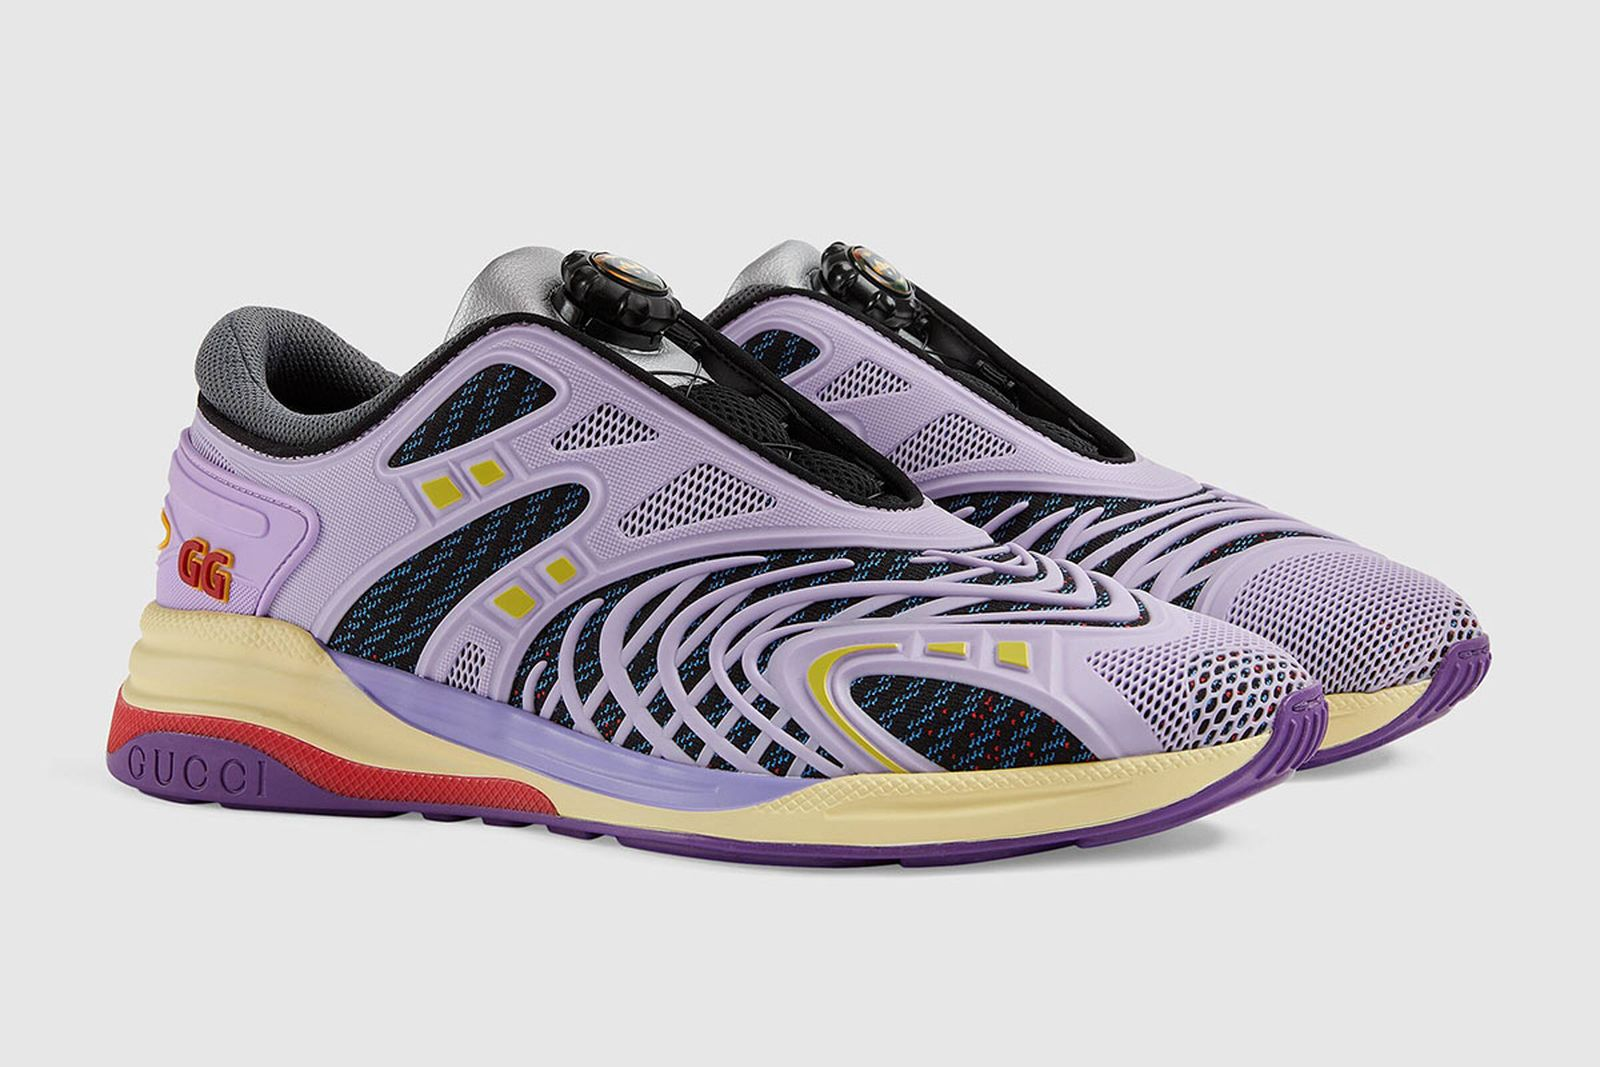 gucci-ultrapace-r-lilac-yellow-release-date-price-03